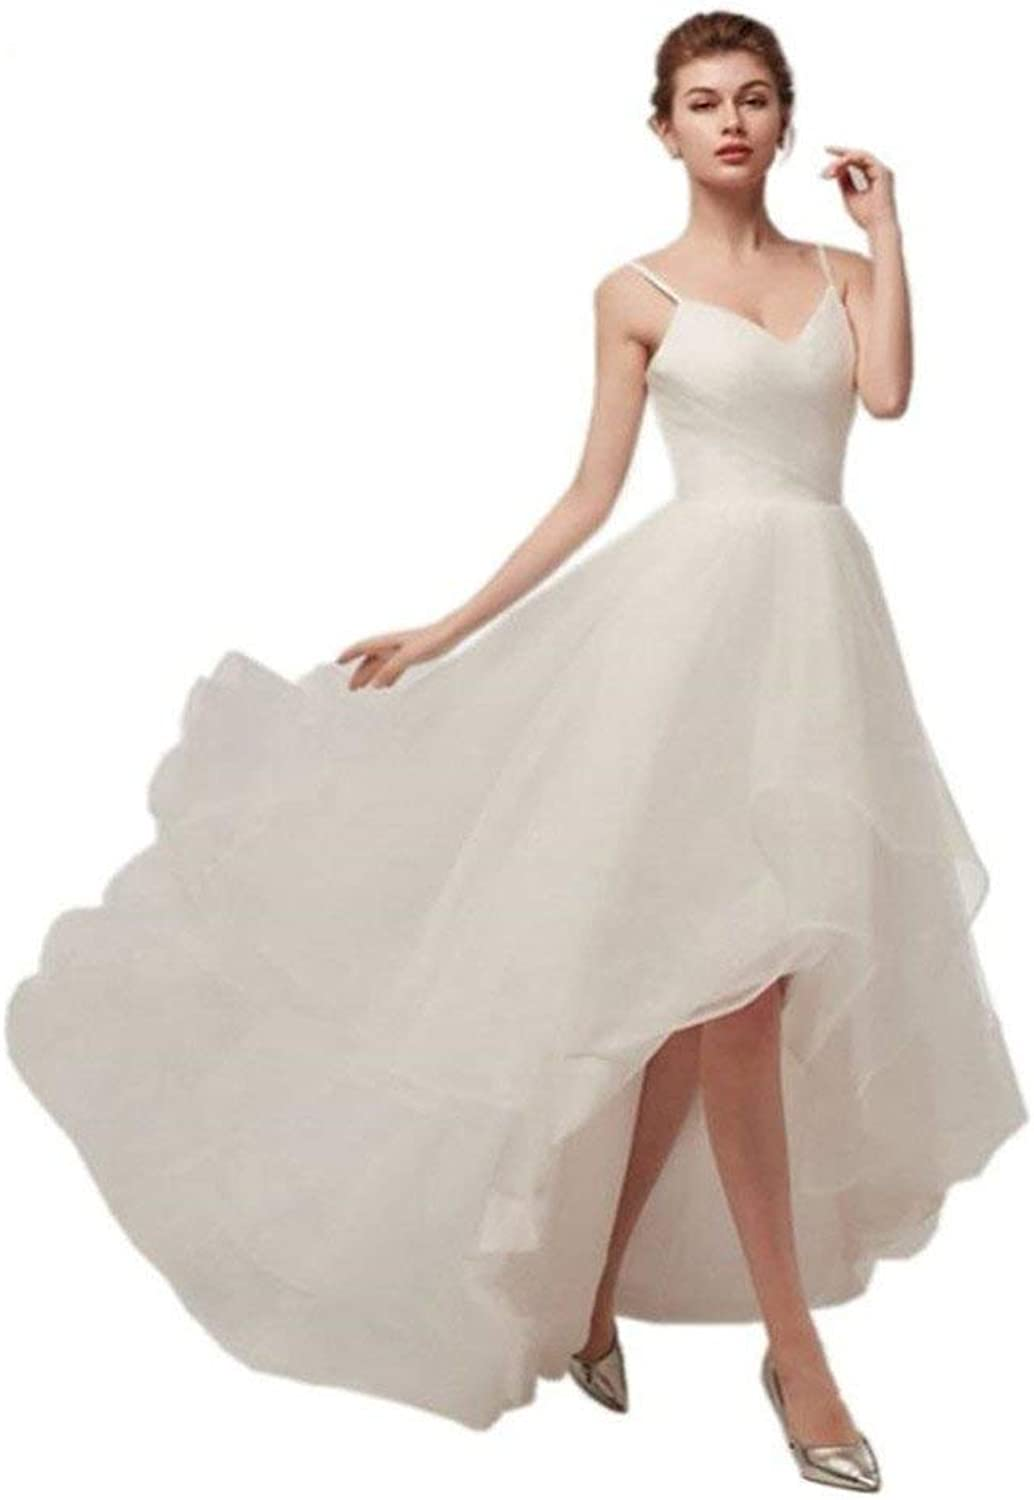 JKLV Wedding Dress European and American Bride Simple Shoulder Strap Short Wedding Dress Photo Photo Dress